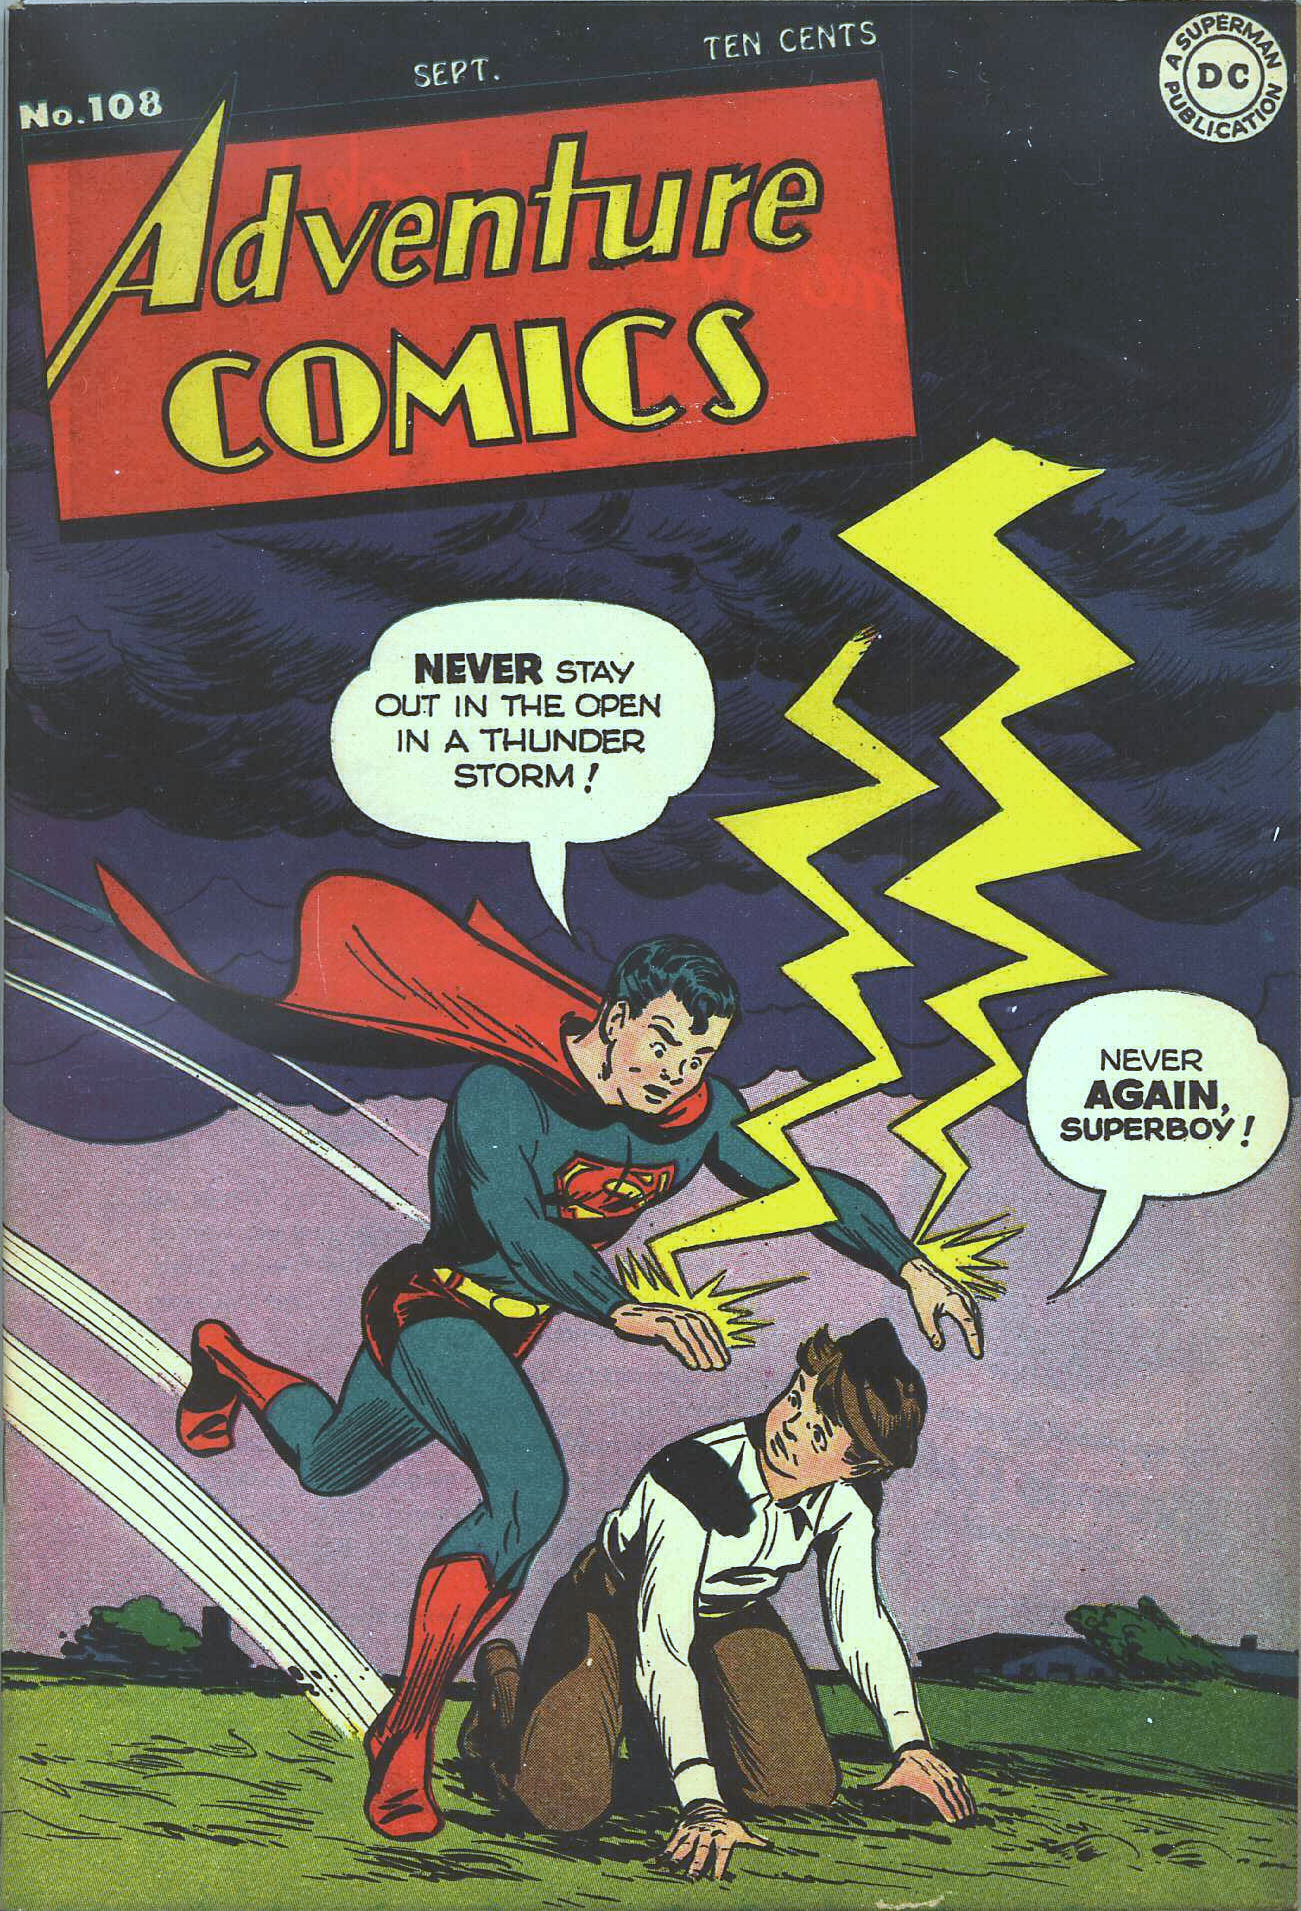 Read online Adventure Comics (1938) comic -  Issue #108 - 2